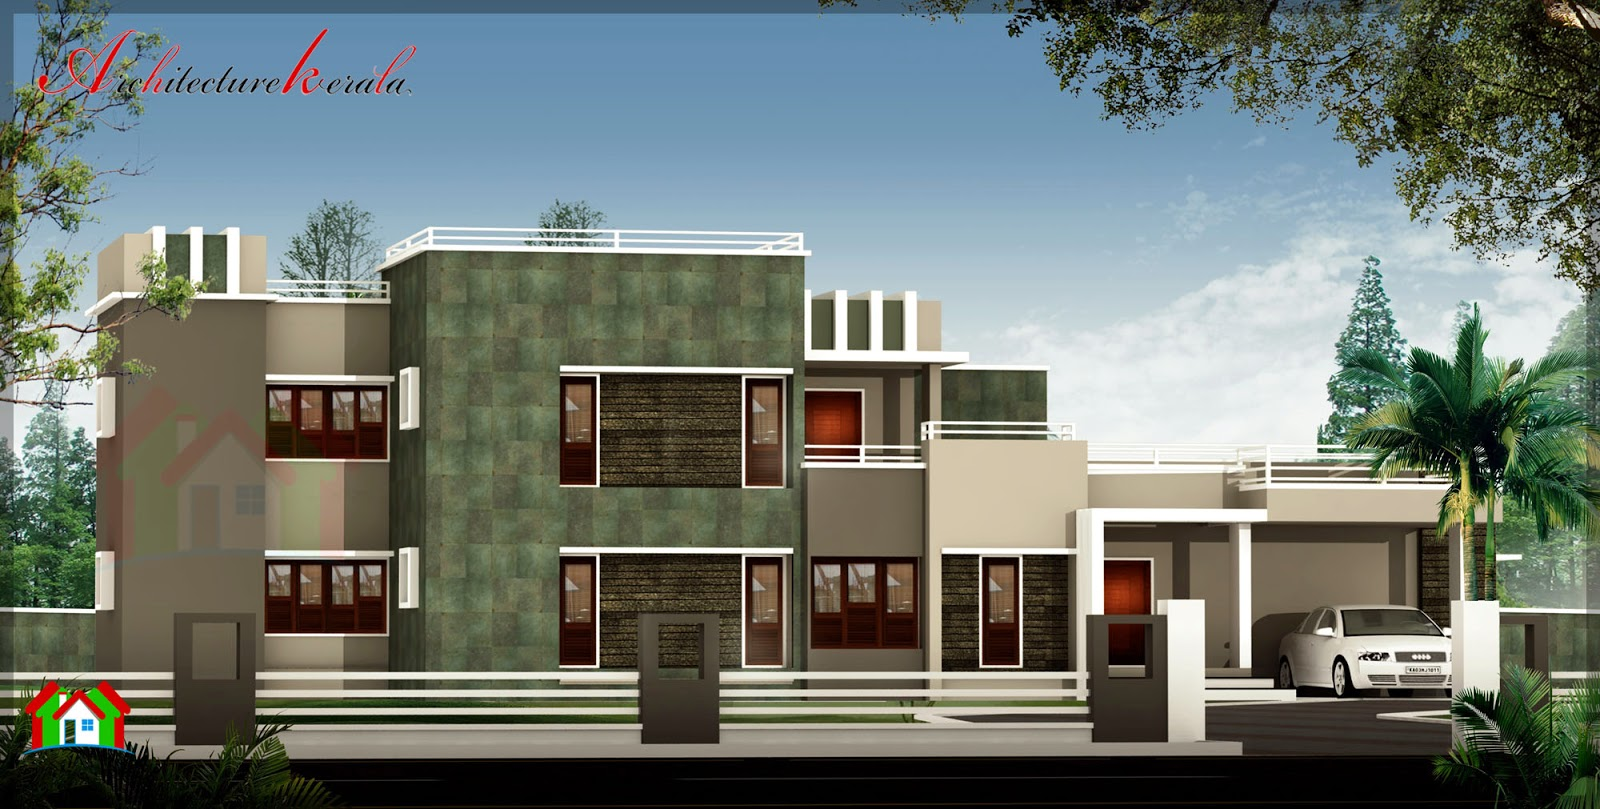 3000 sq ft modern style house elevation architecture kerala for Contemporary building elevation